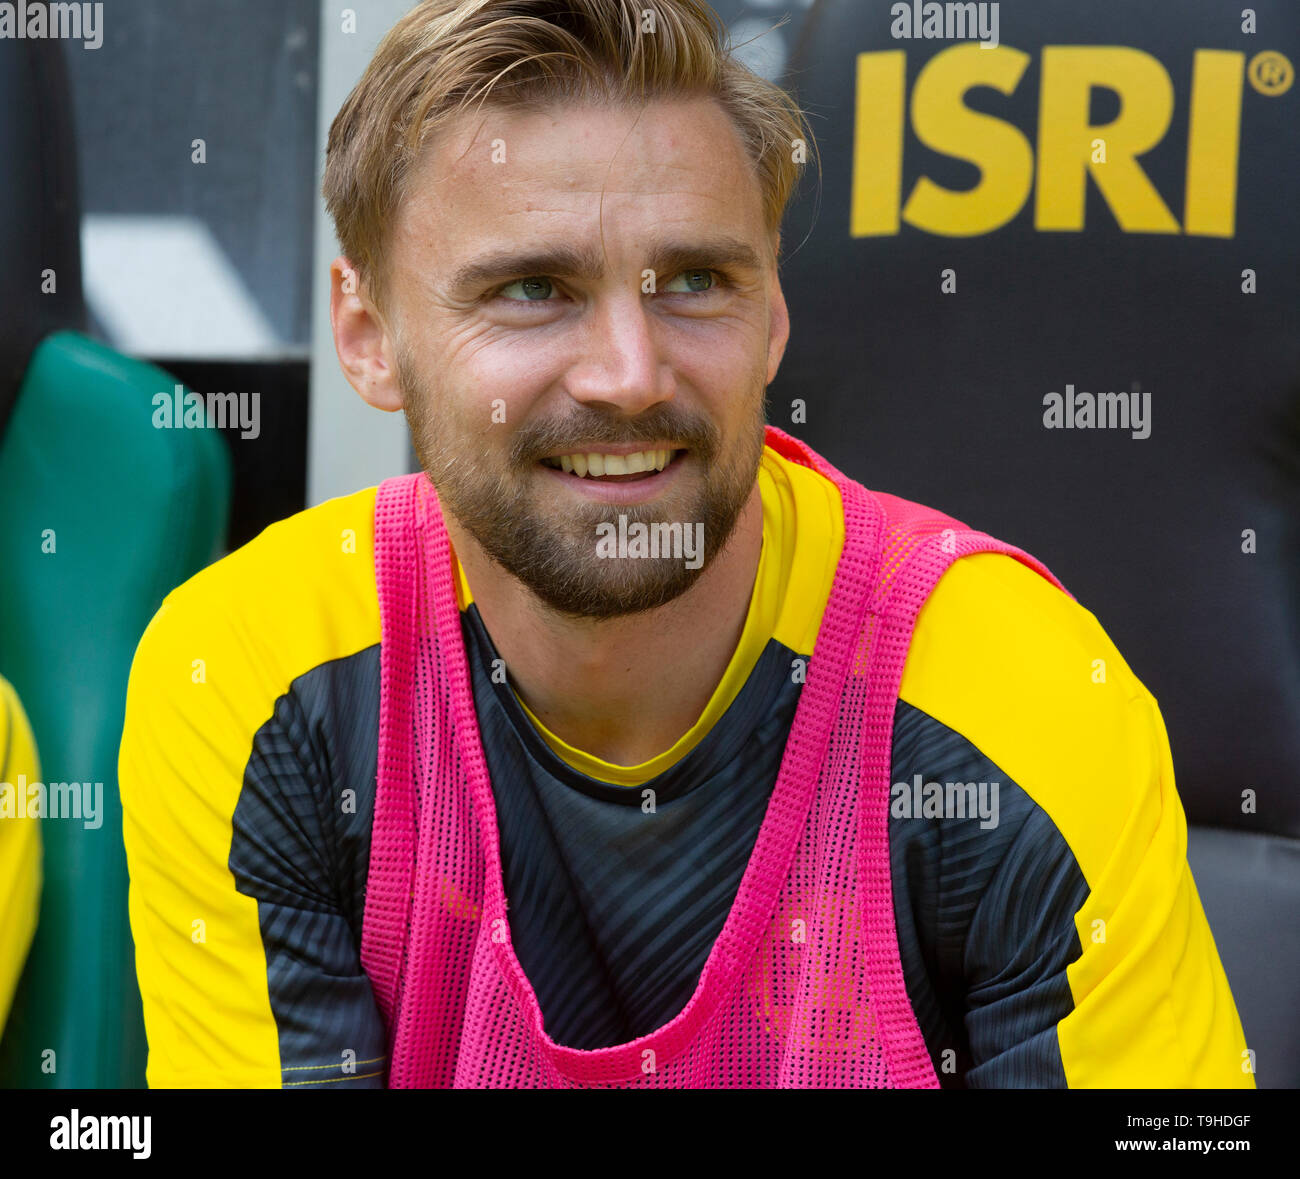 sports, football, Bundesliga, 2018/2019, Borussia Moenchengladbach vs. BVB Borussia Dortmund 0-2, Stadium Borussia Park, players bench, Marcel Schmelzer (BVB), DFL REGULATIONS PROHIBIT ANY USE OF PHOTOGRAPHS AS IMAGE SEQUENCES AND/OR QUASI-VIDEO - Stock Image